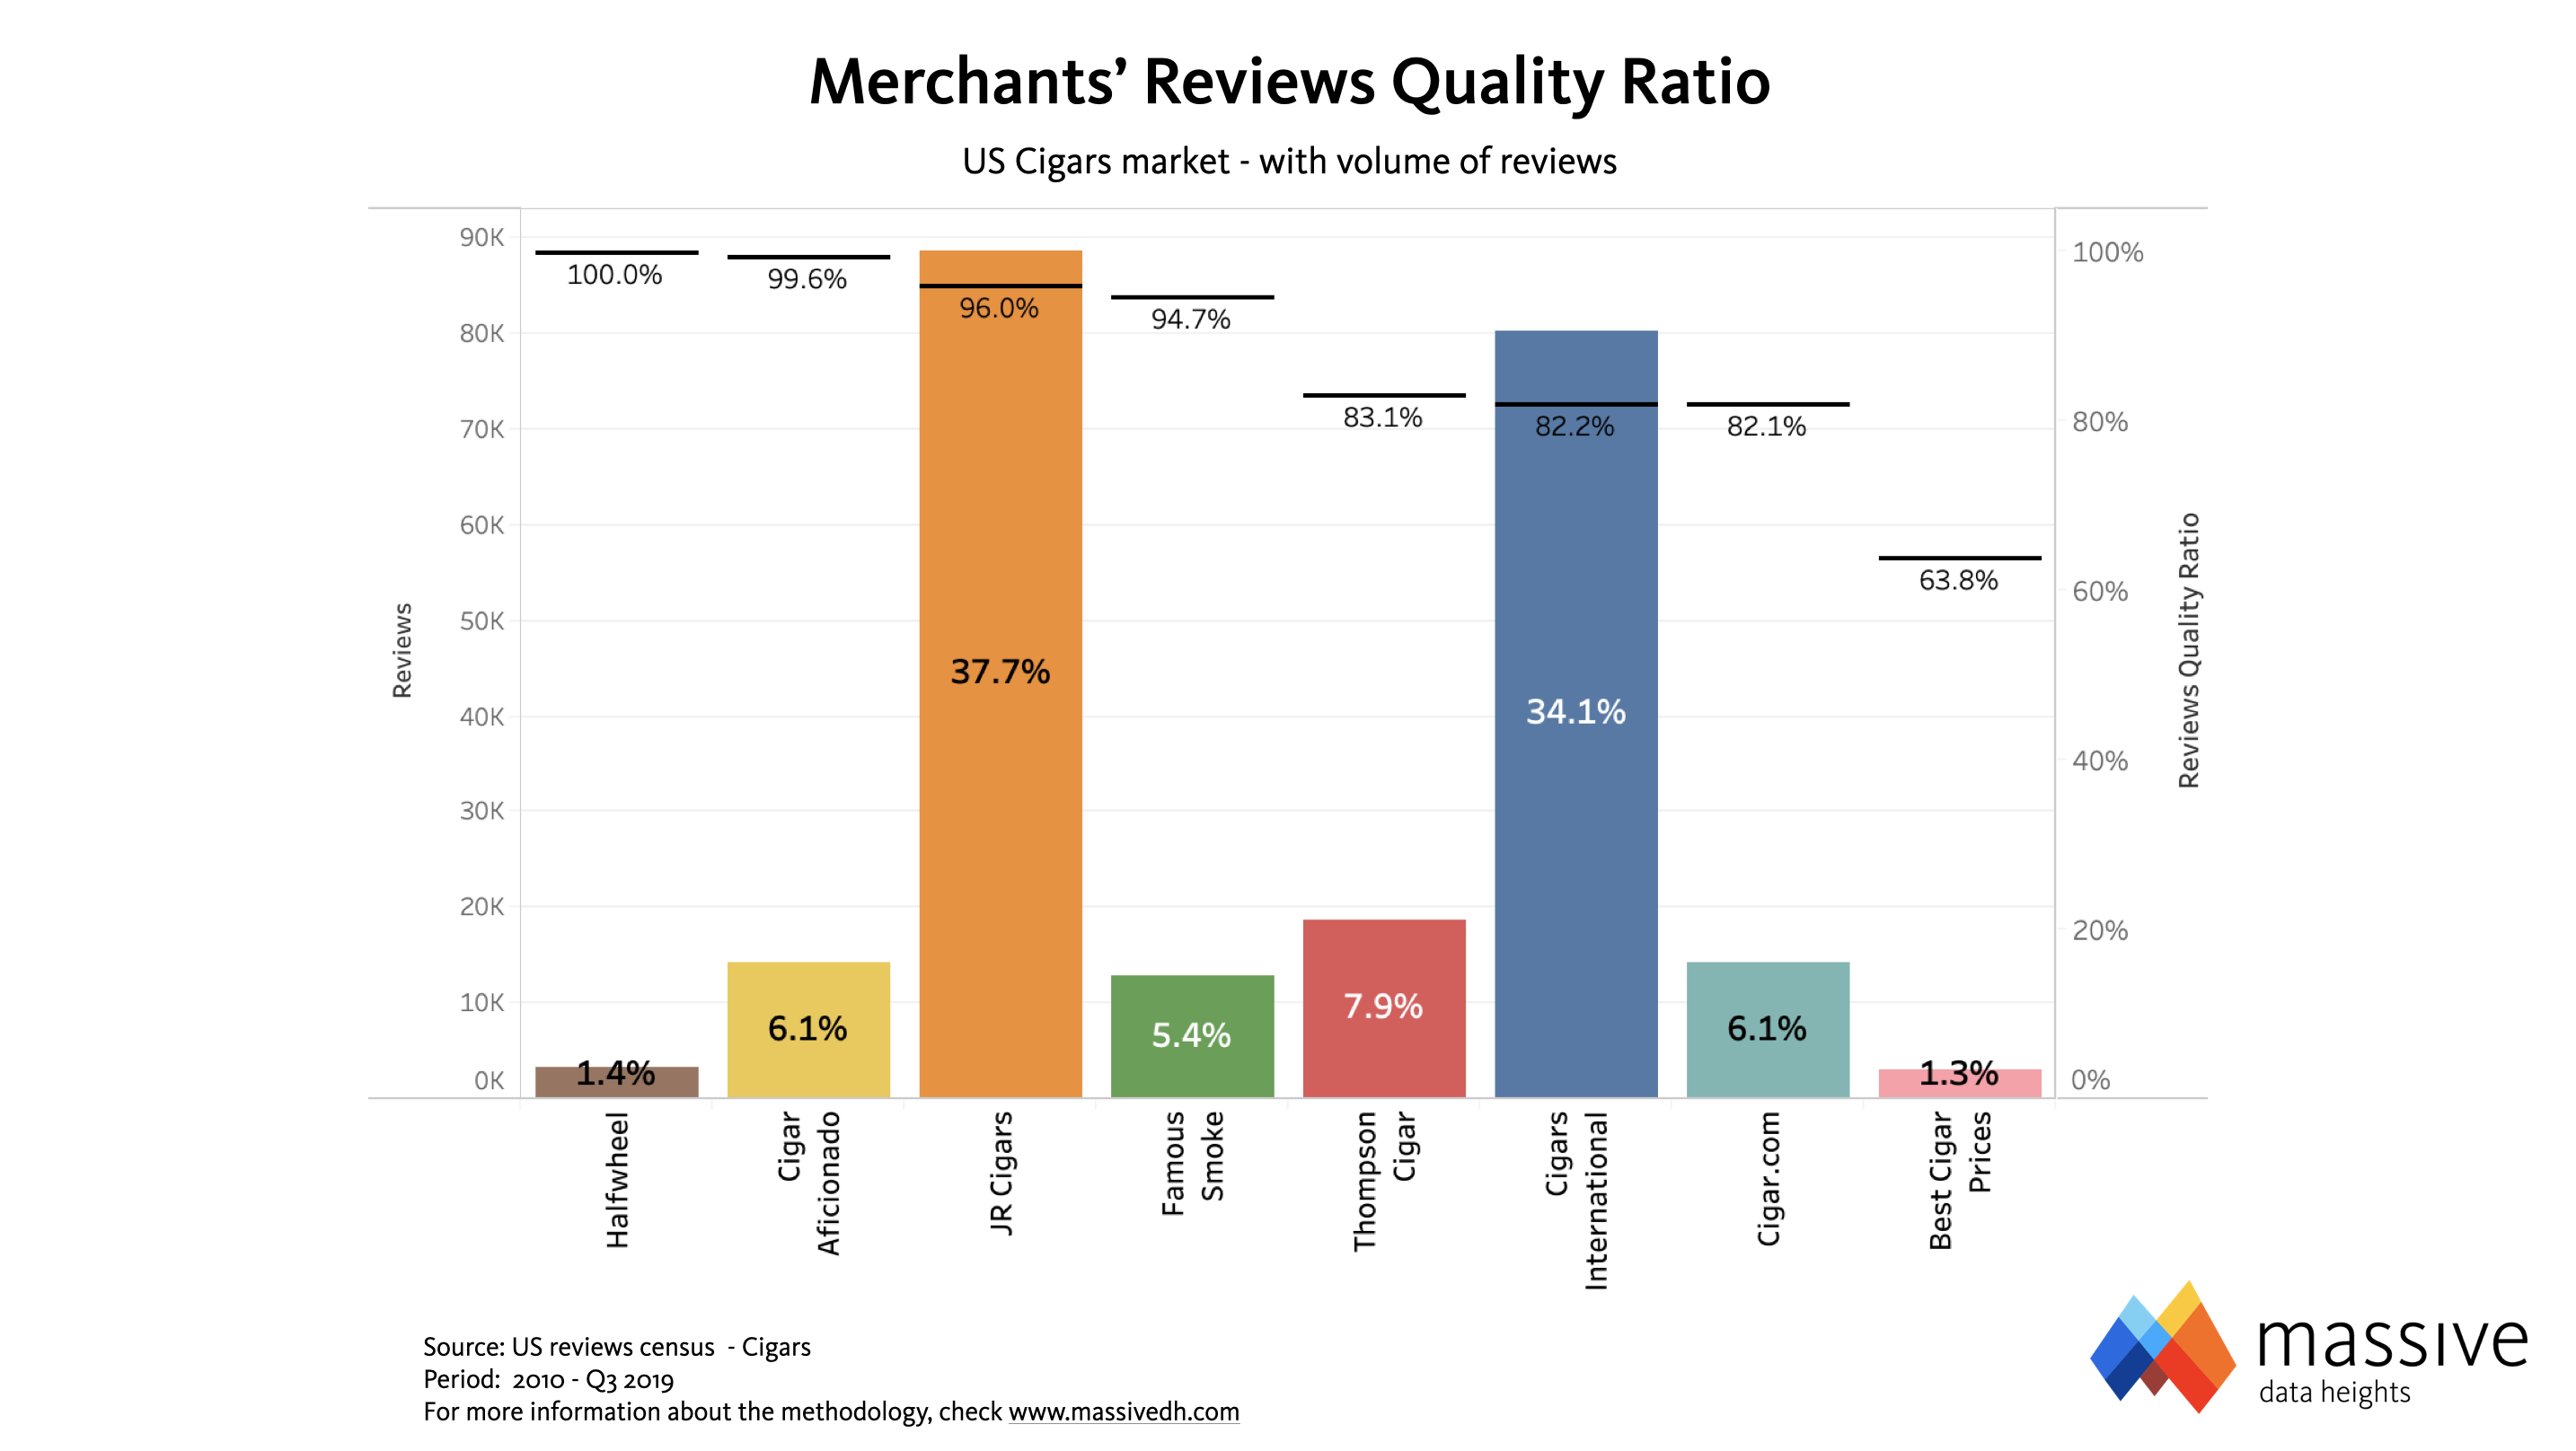 MASSIVE - Cigars Merchants Reviews Quality Ratio